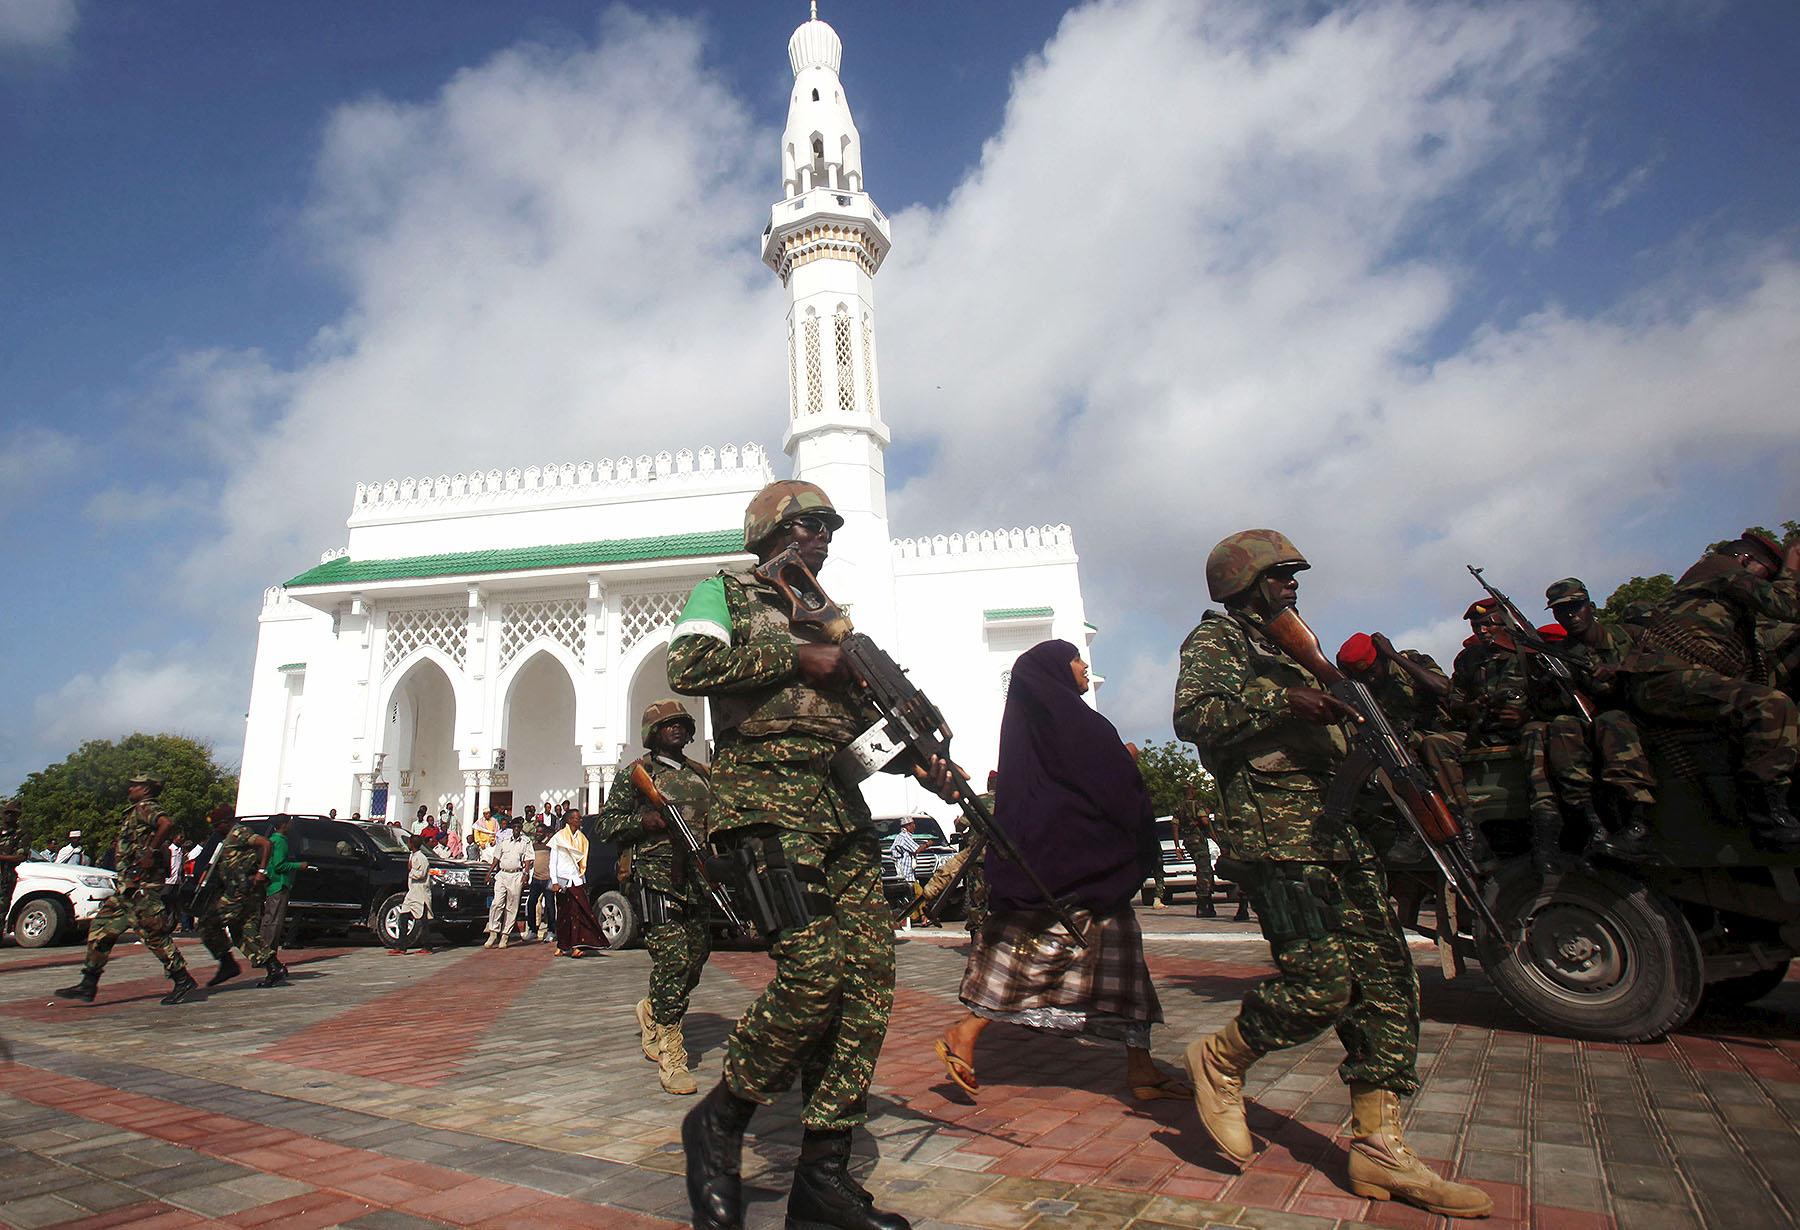 Soldiers serving in the African Union Mission in Somalia patrol outside a Mosque.